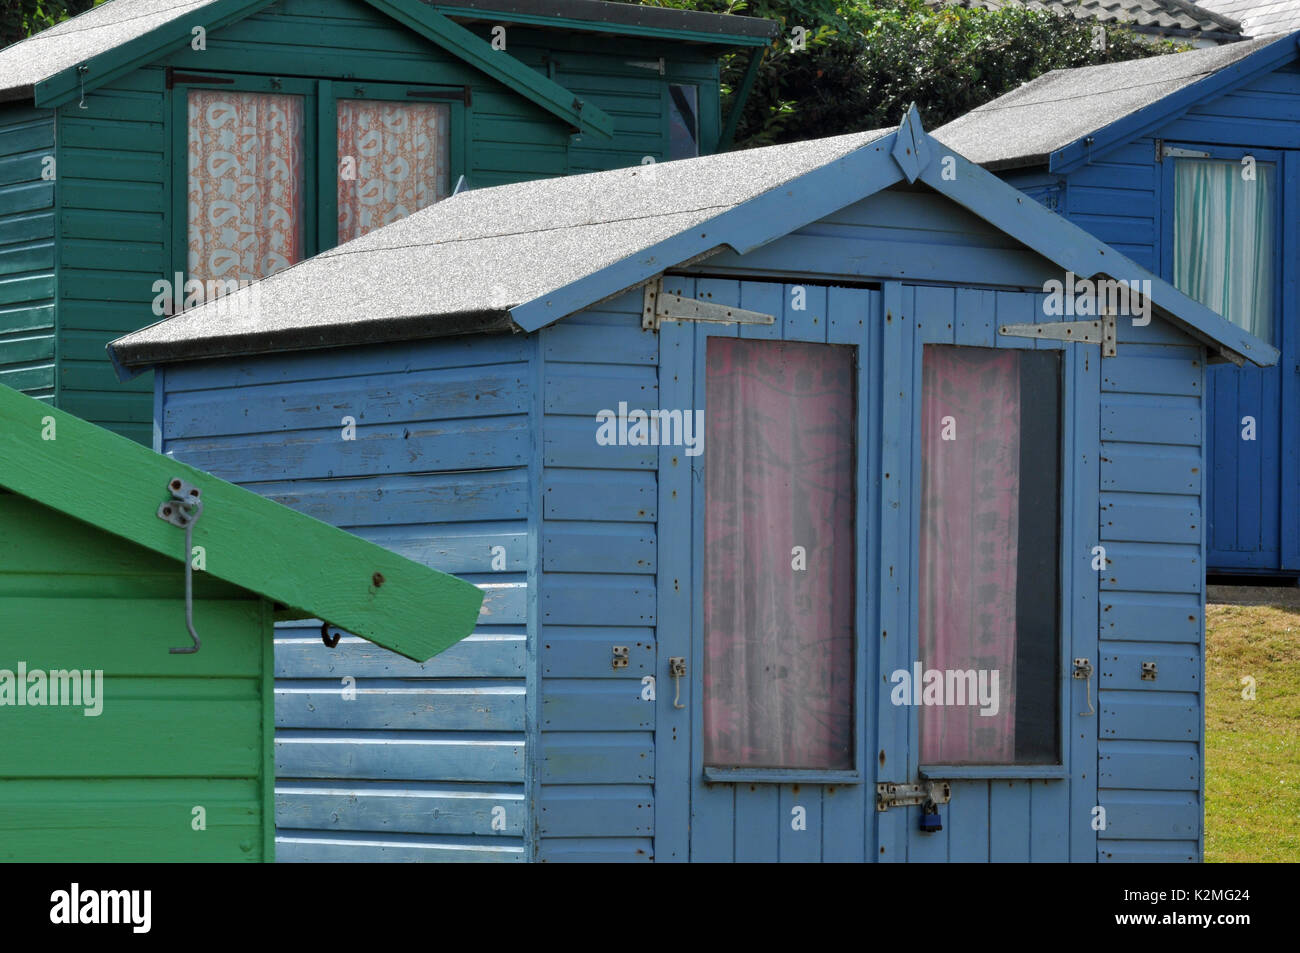 Brightly coloured beach huts on the seashore in a coastal scene on the beach Isle of Wight holida homes and chalets Stock Photo